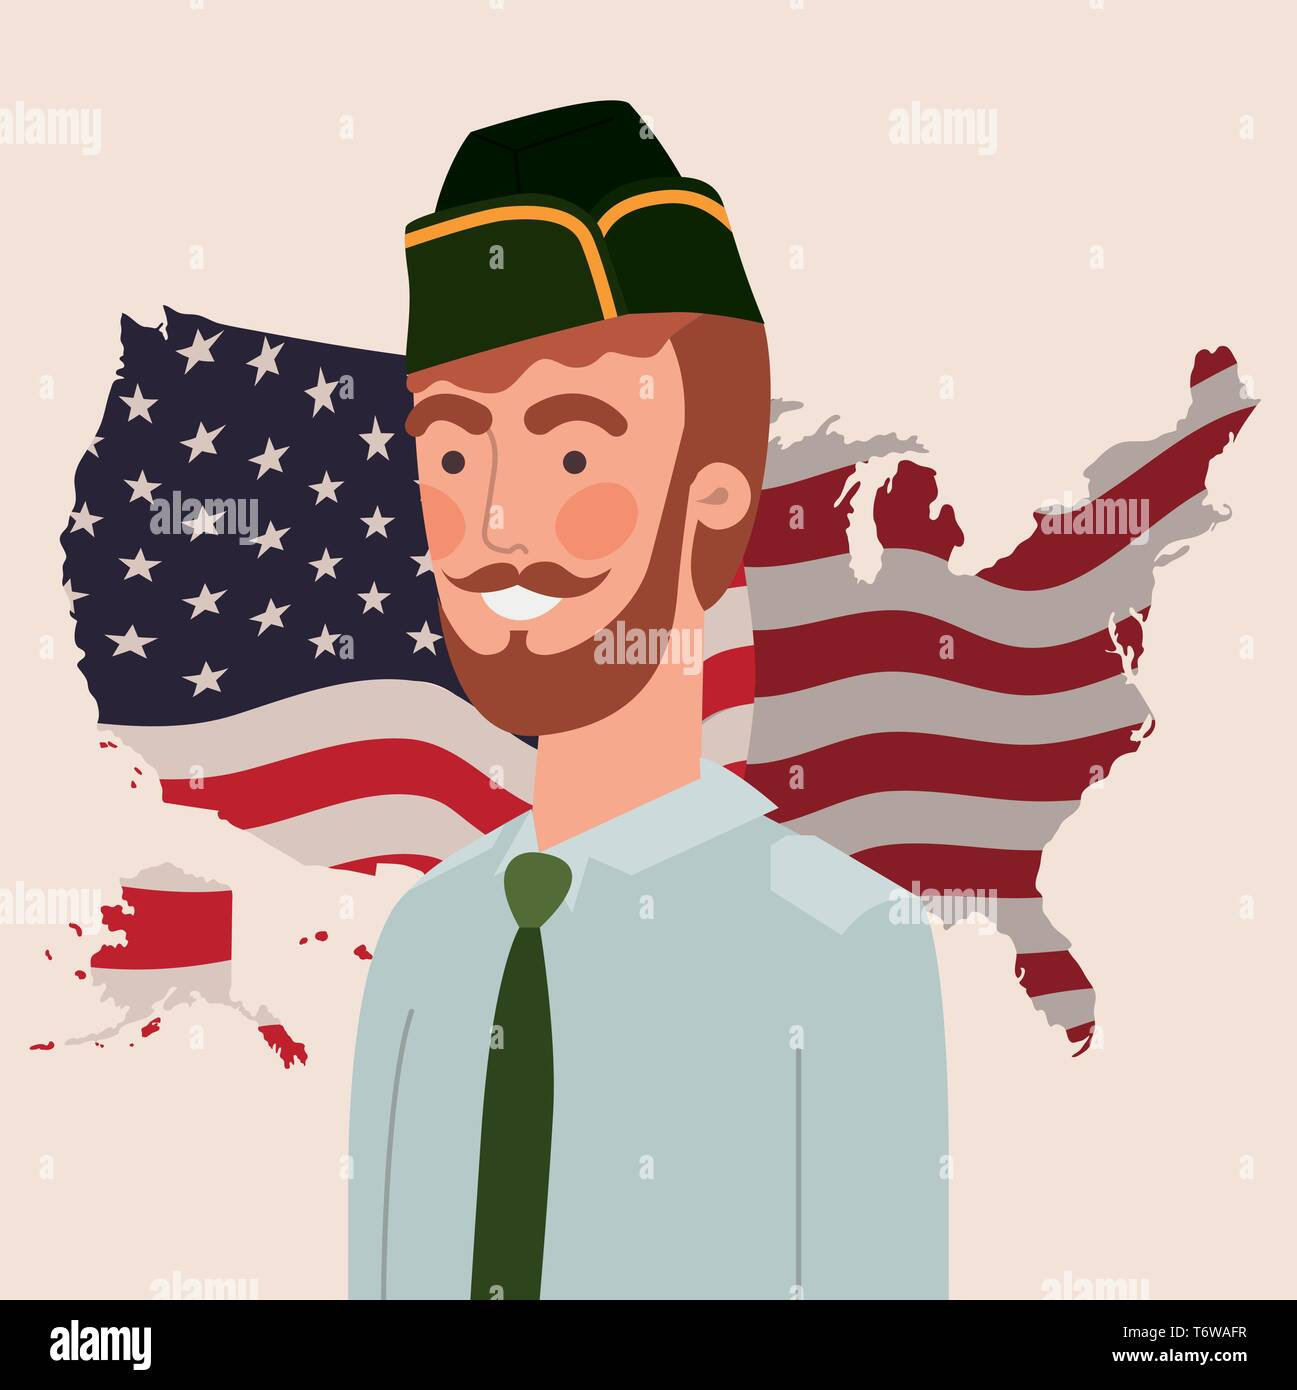 military man with usa map and flag Stock Vector Art ... on nc map clip art, nyc map clip art, maine map clip art, va map clip art, connecticut map clip art, wv map clip art, sc map clip art, north dakota map clip art, az map clip art, tn map clip art, ca map clip art,